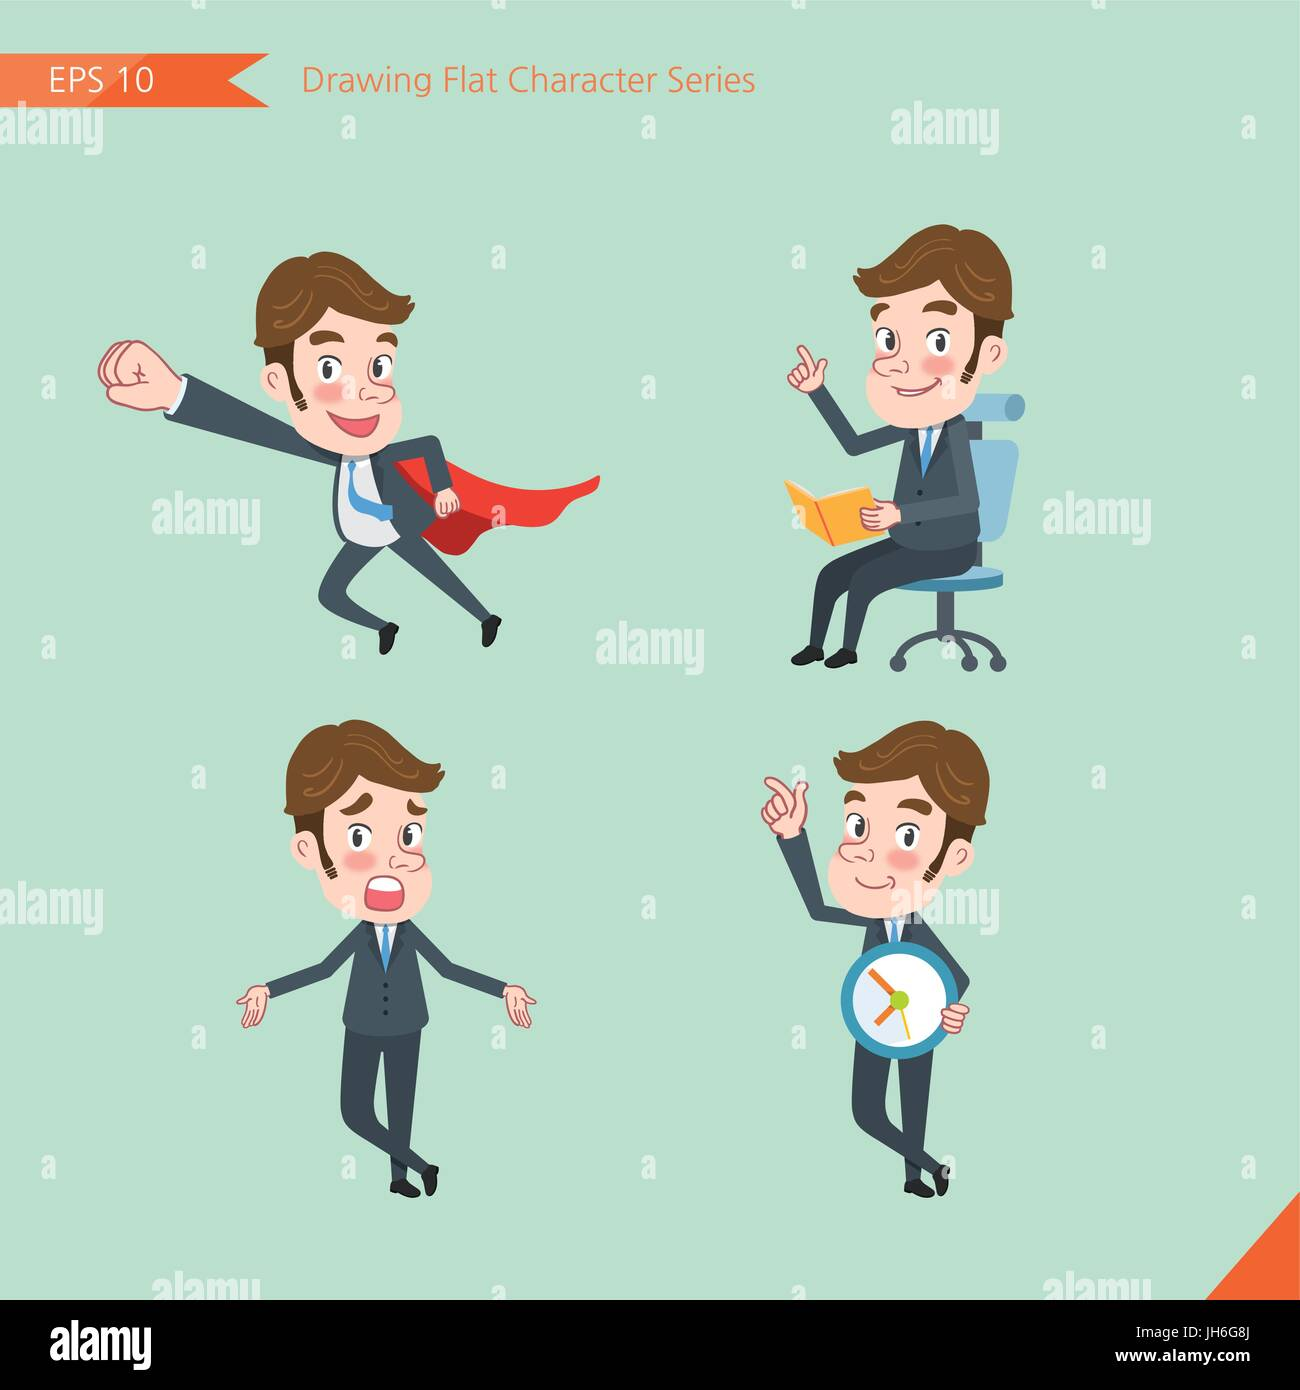 Set of drawing flat character style, business concept young office worker activities - business hero, Question, - Stock Vector